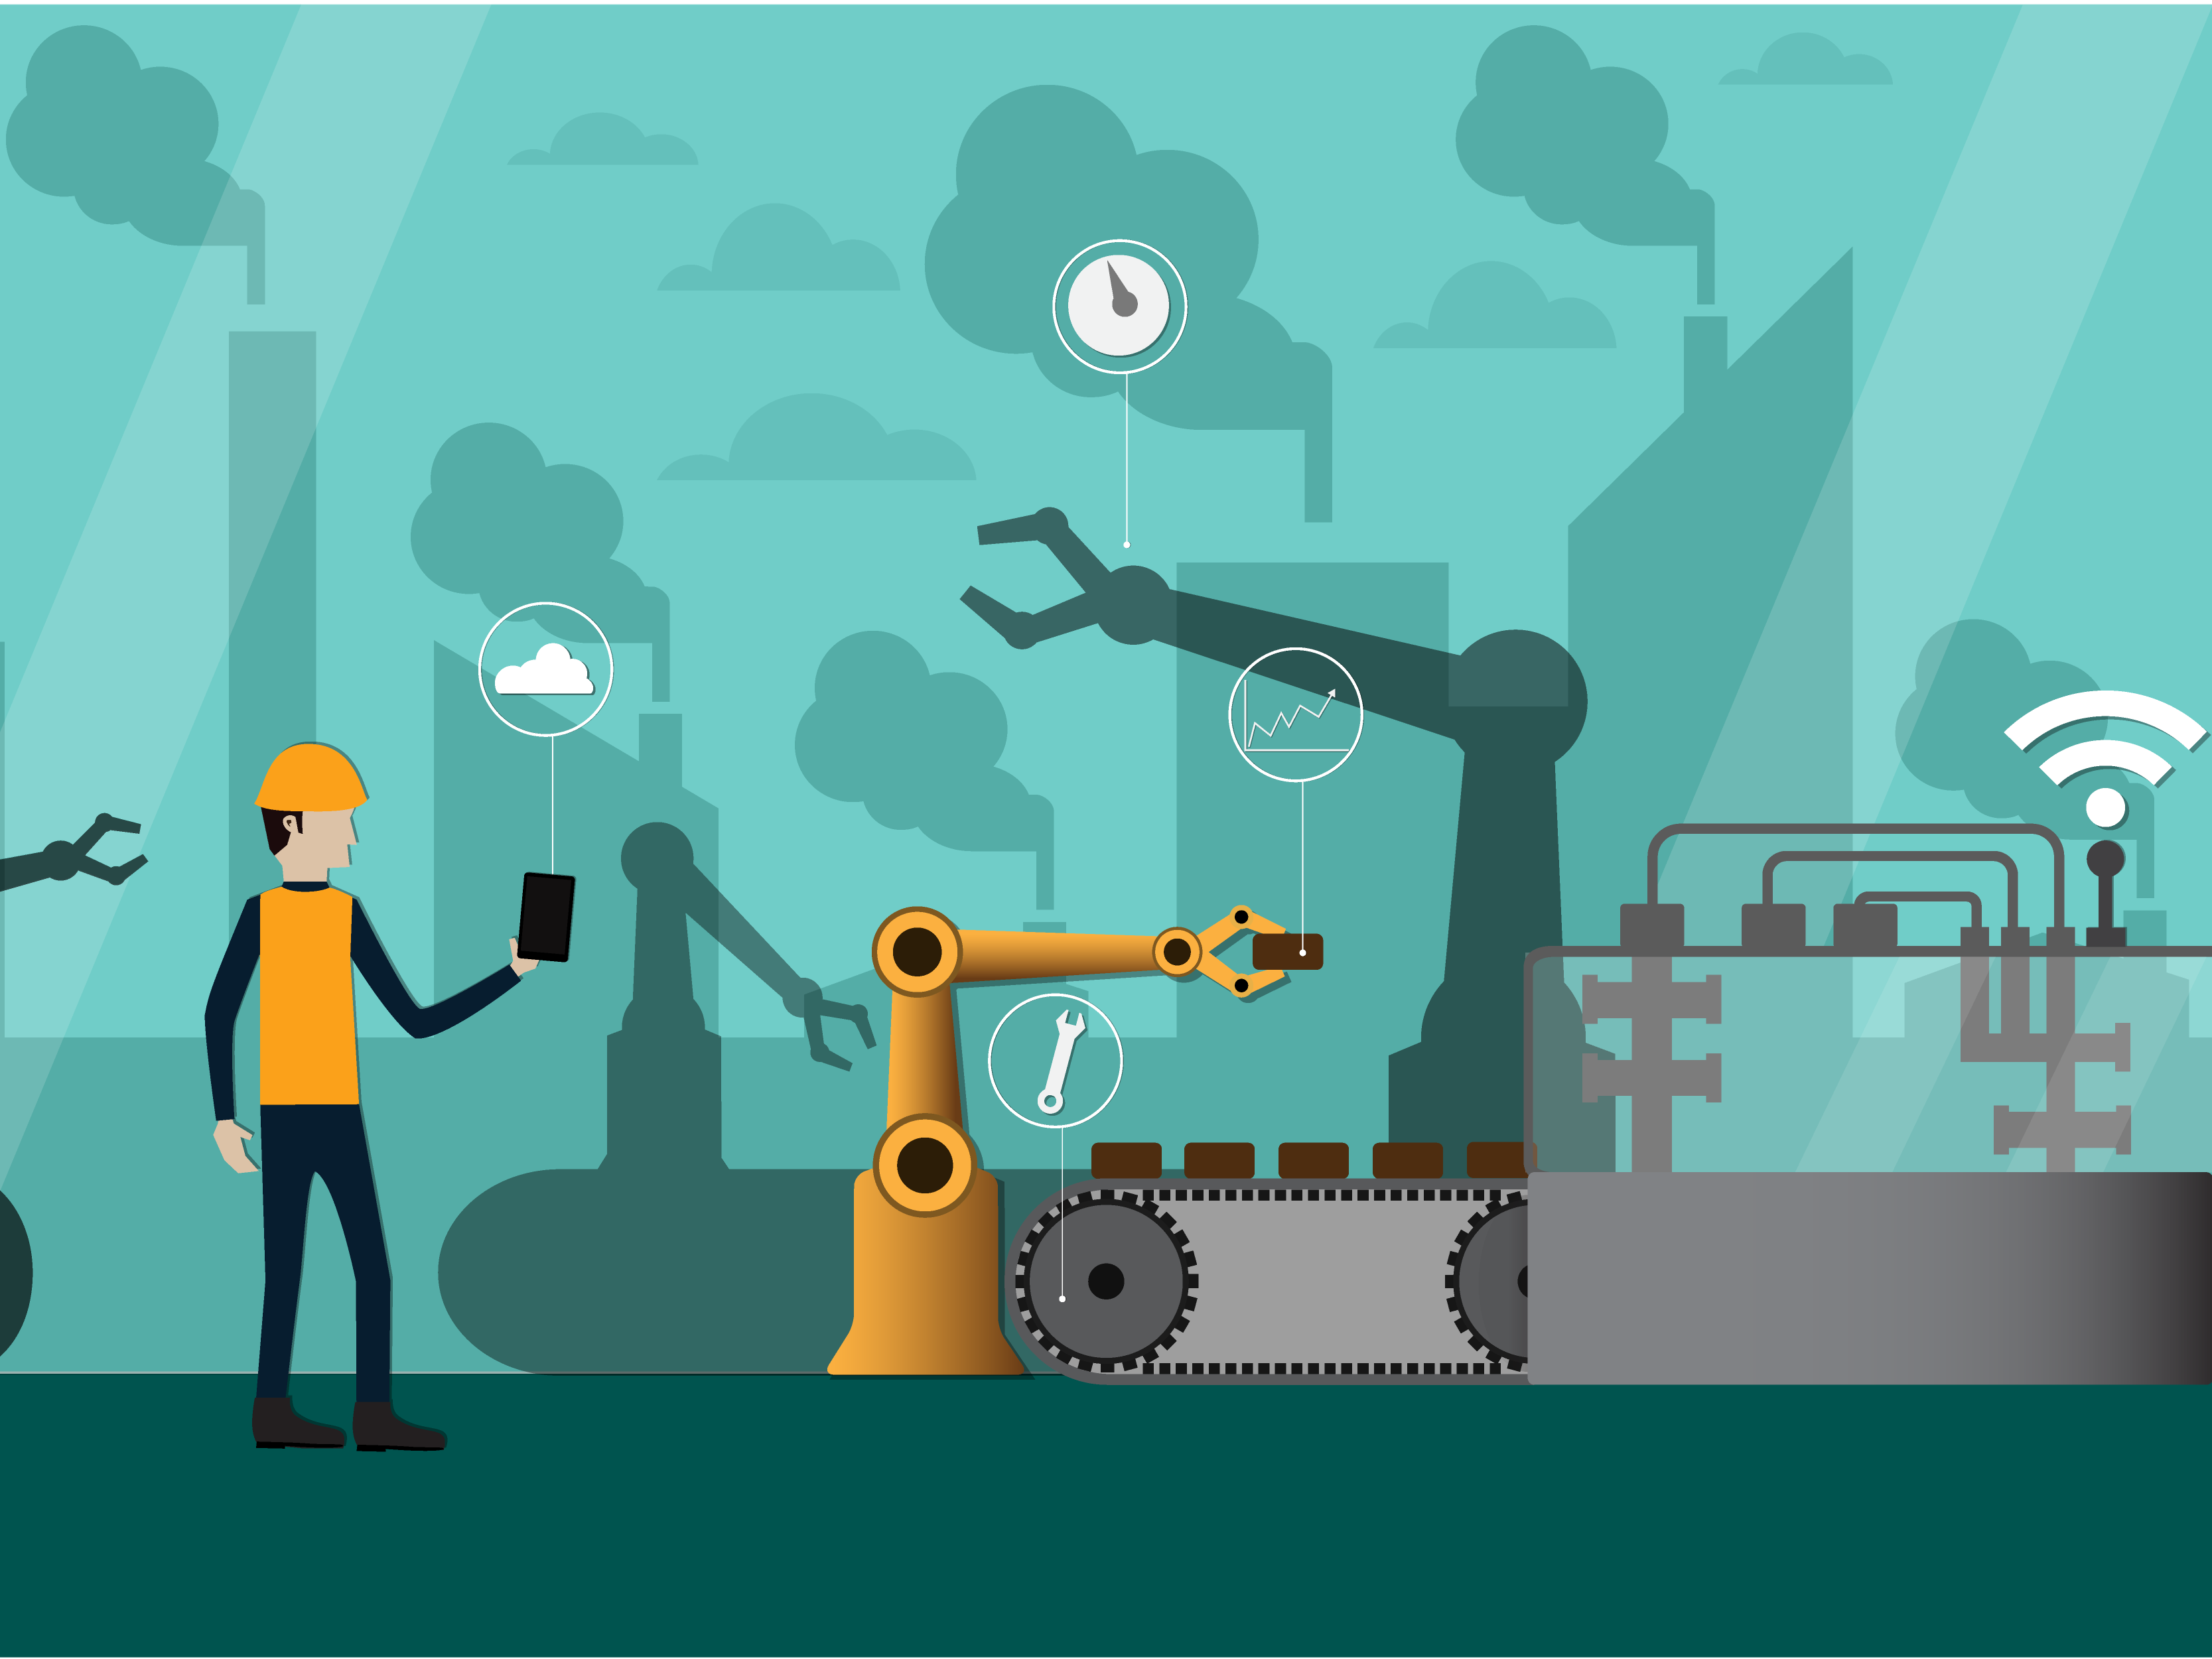 What are the Possible Risks of Adopting IIoT Solutions?